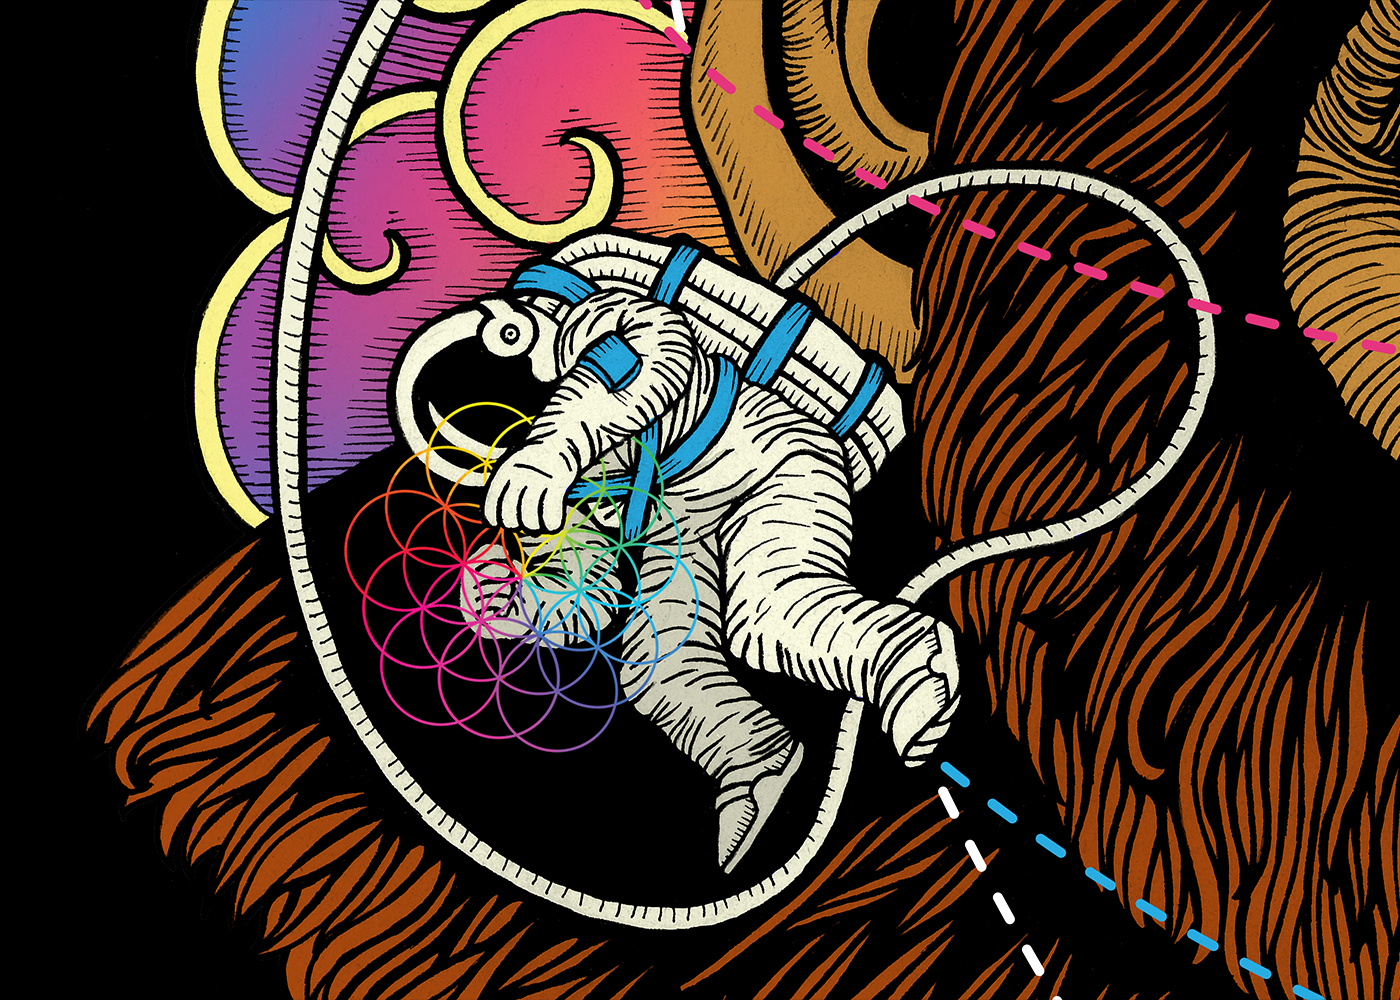 Coldplay a head full of dreams clipart image download COLDPLAY - A Head Full Of Dreams on Behance image download